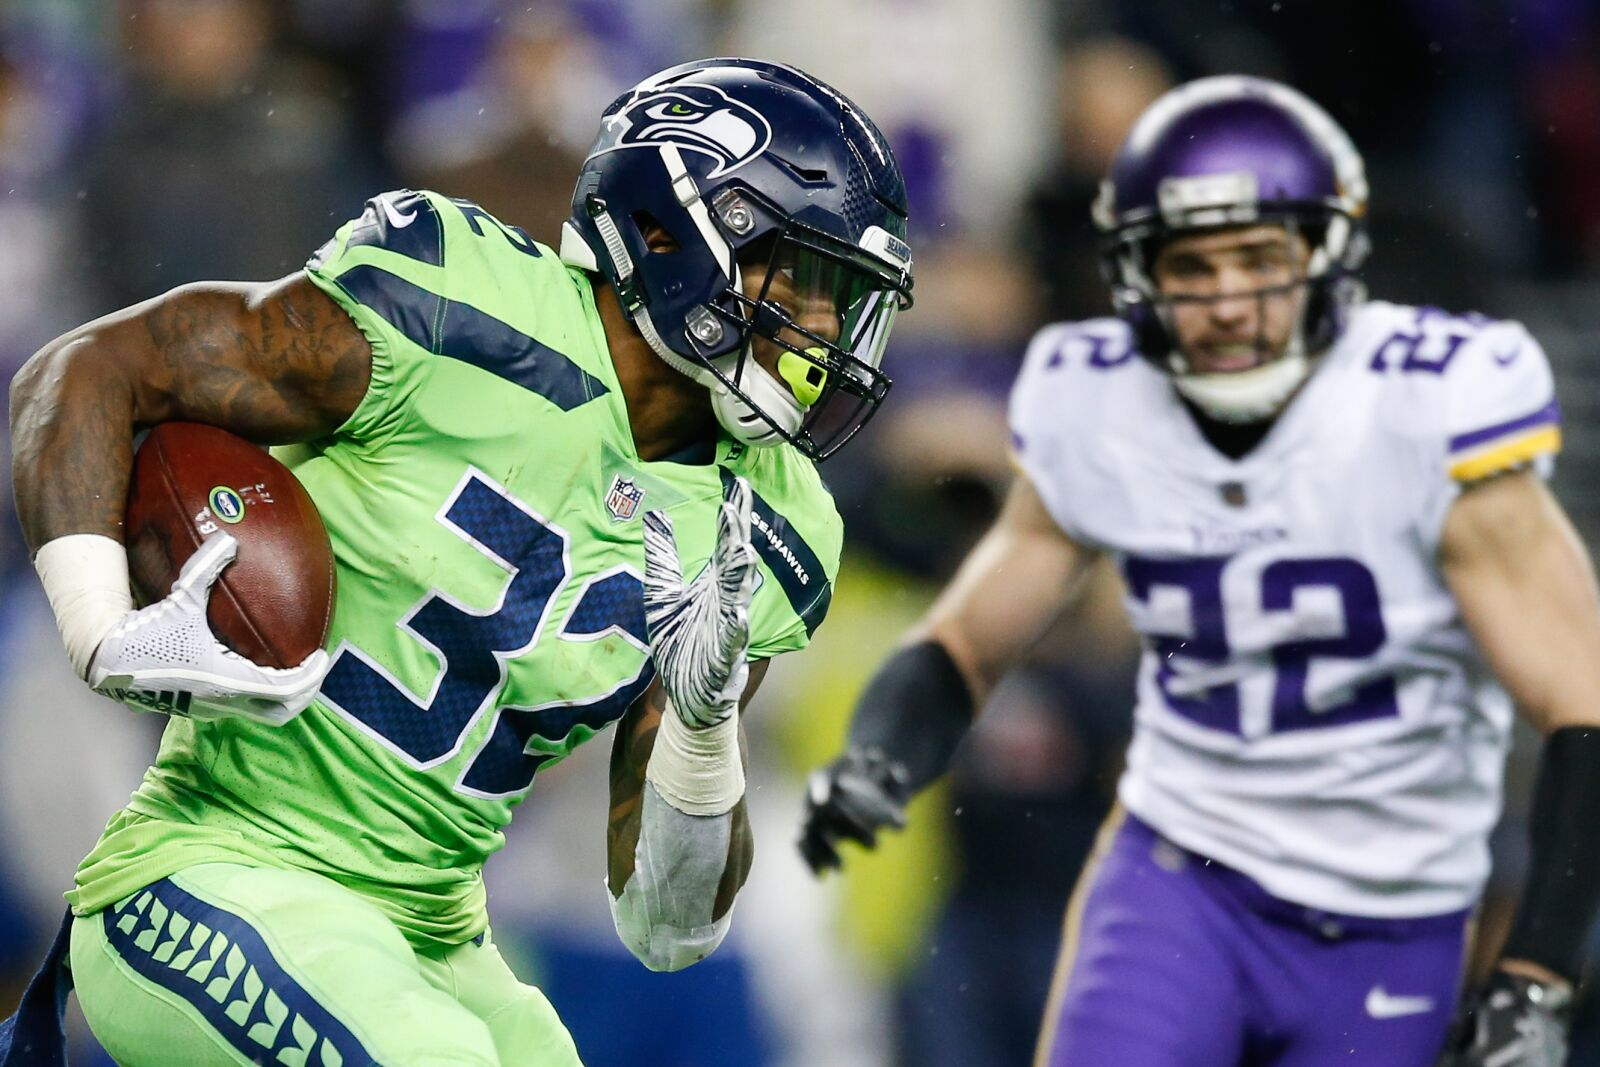 582e7fda Here is how to watch & listen to the Seahawks play the Vikings on Sunday